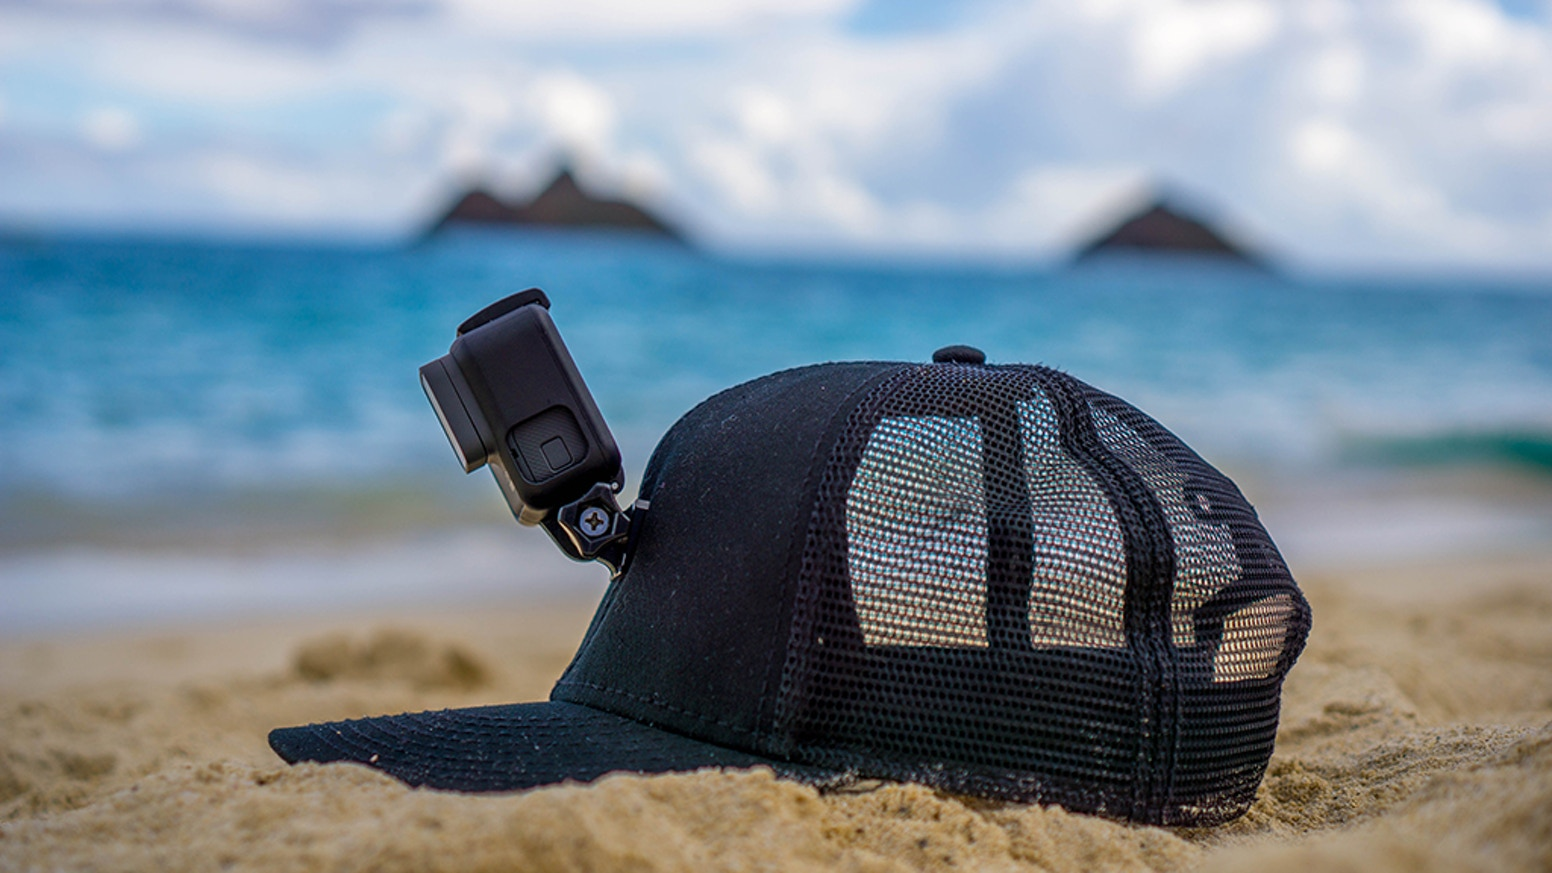 Because honestly, the head strap sucks. Filming your adventure hands-free is now as easy as popping on a hat. Water-ready, it FLOATS!